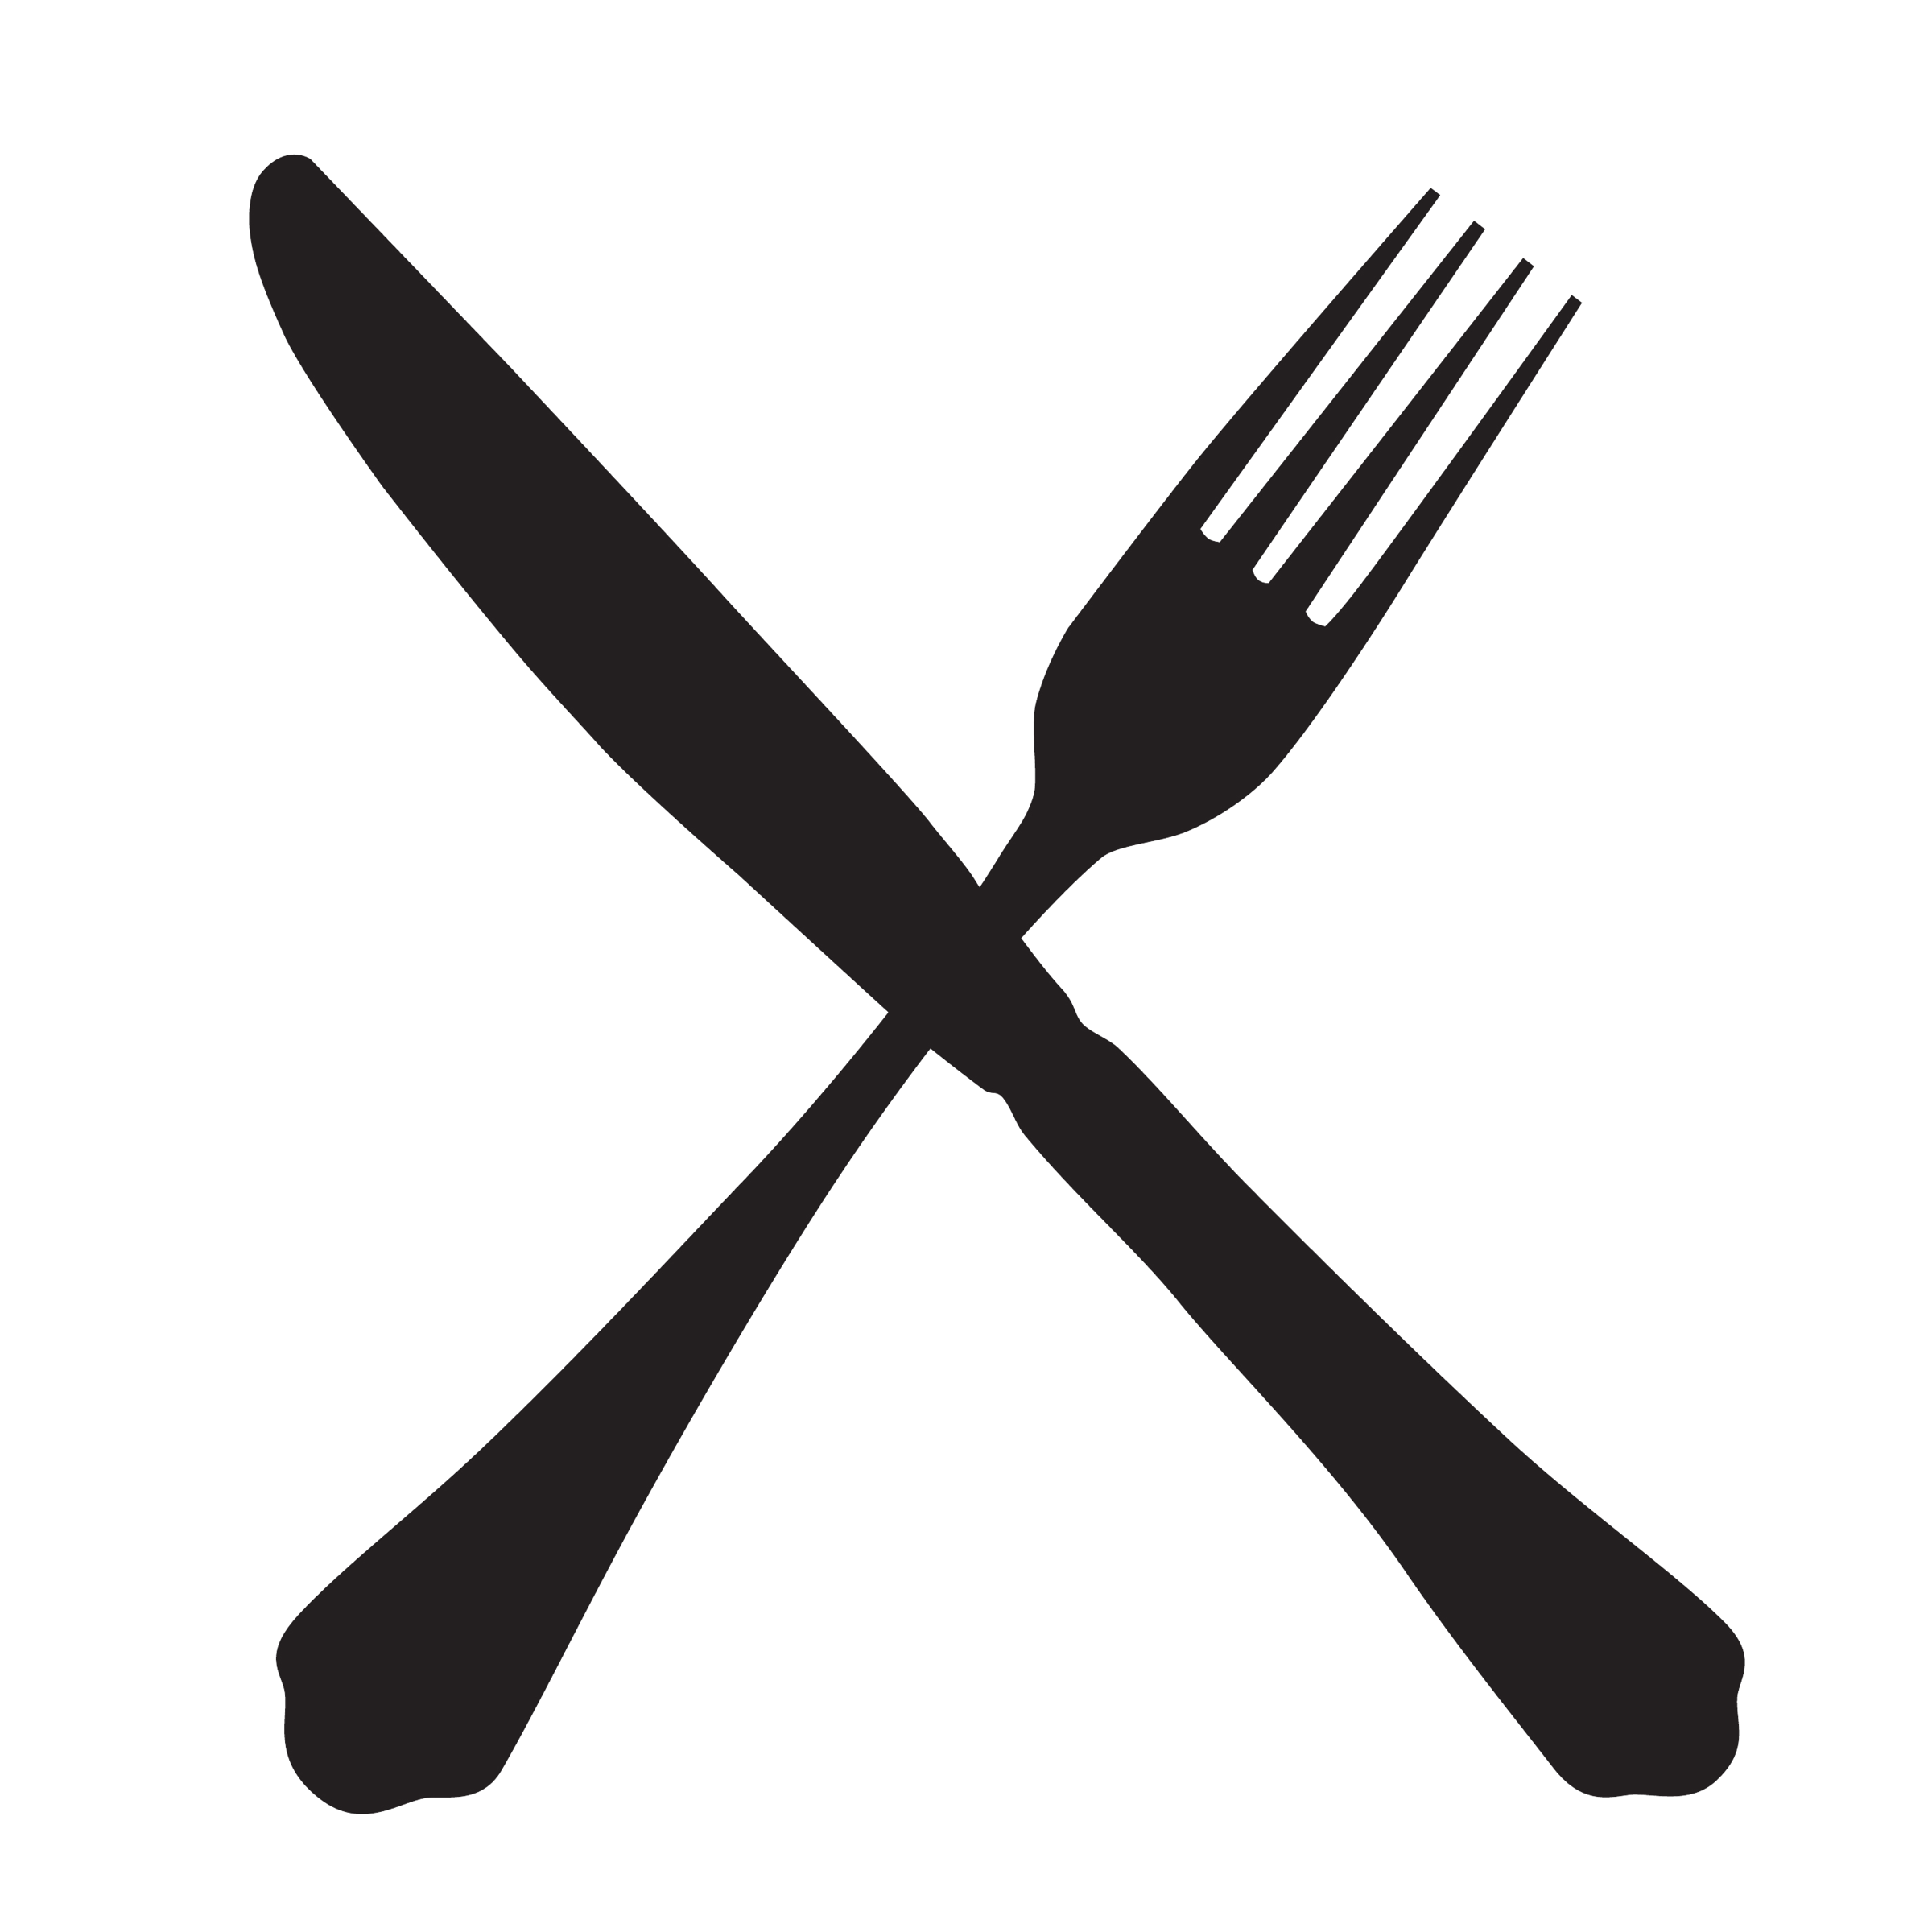 fork and knife illustration